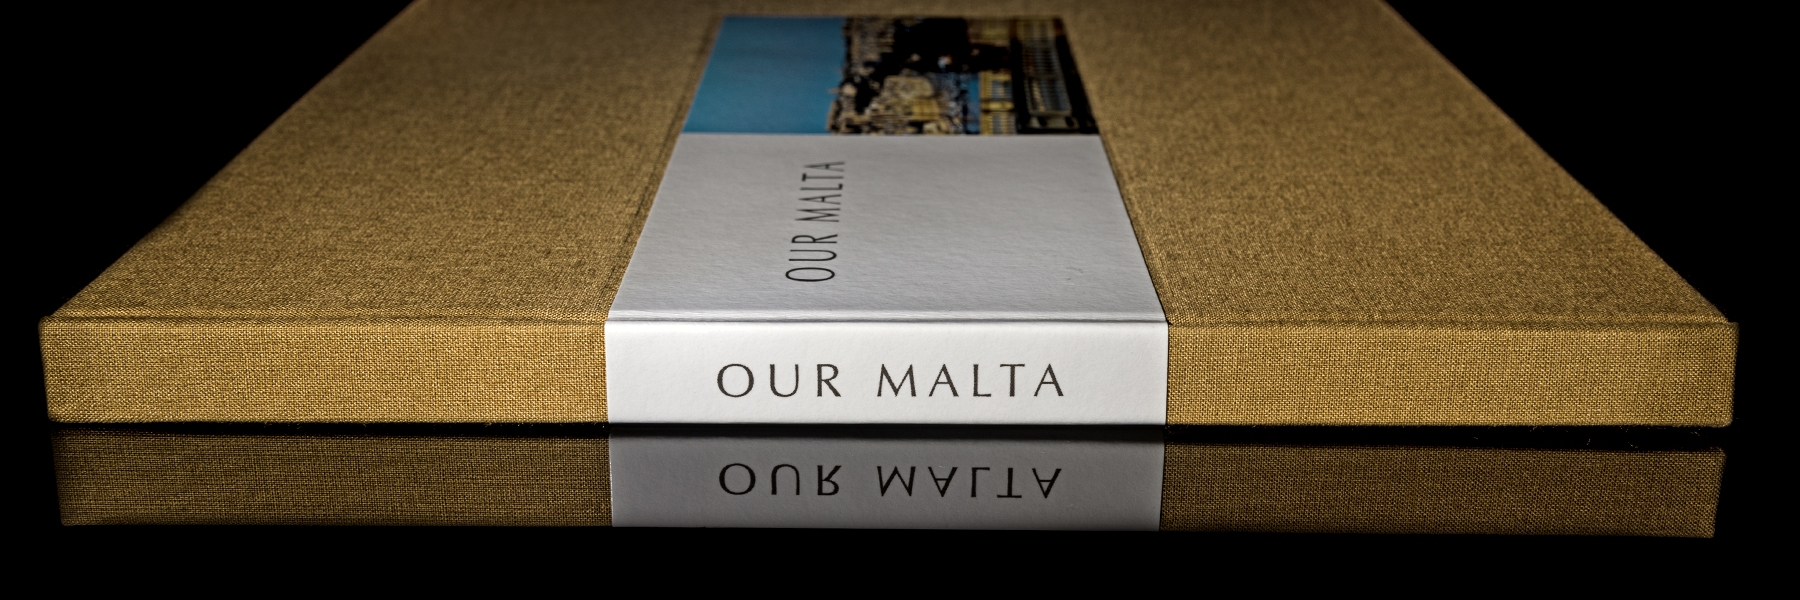 Our Malta Book 14.jpg